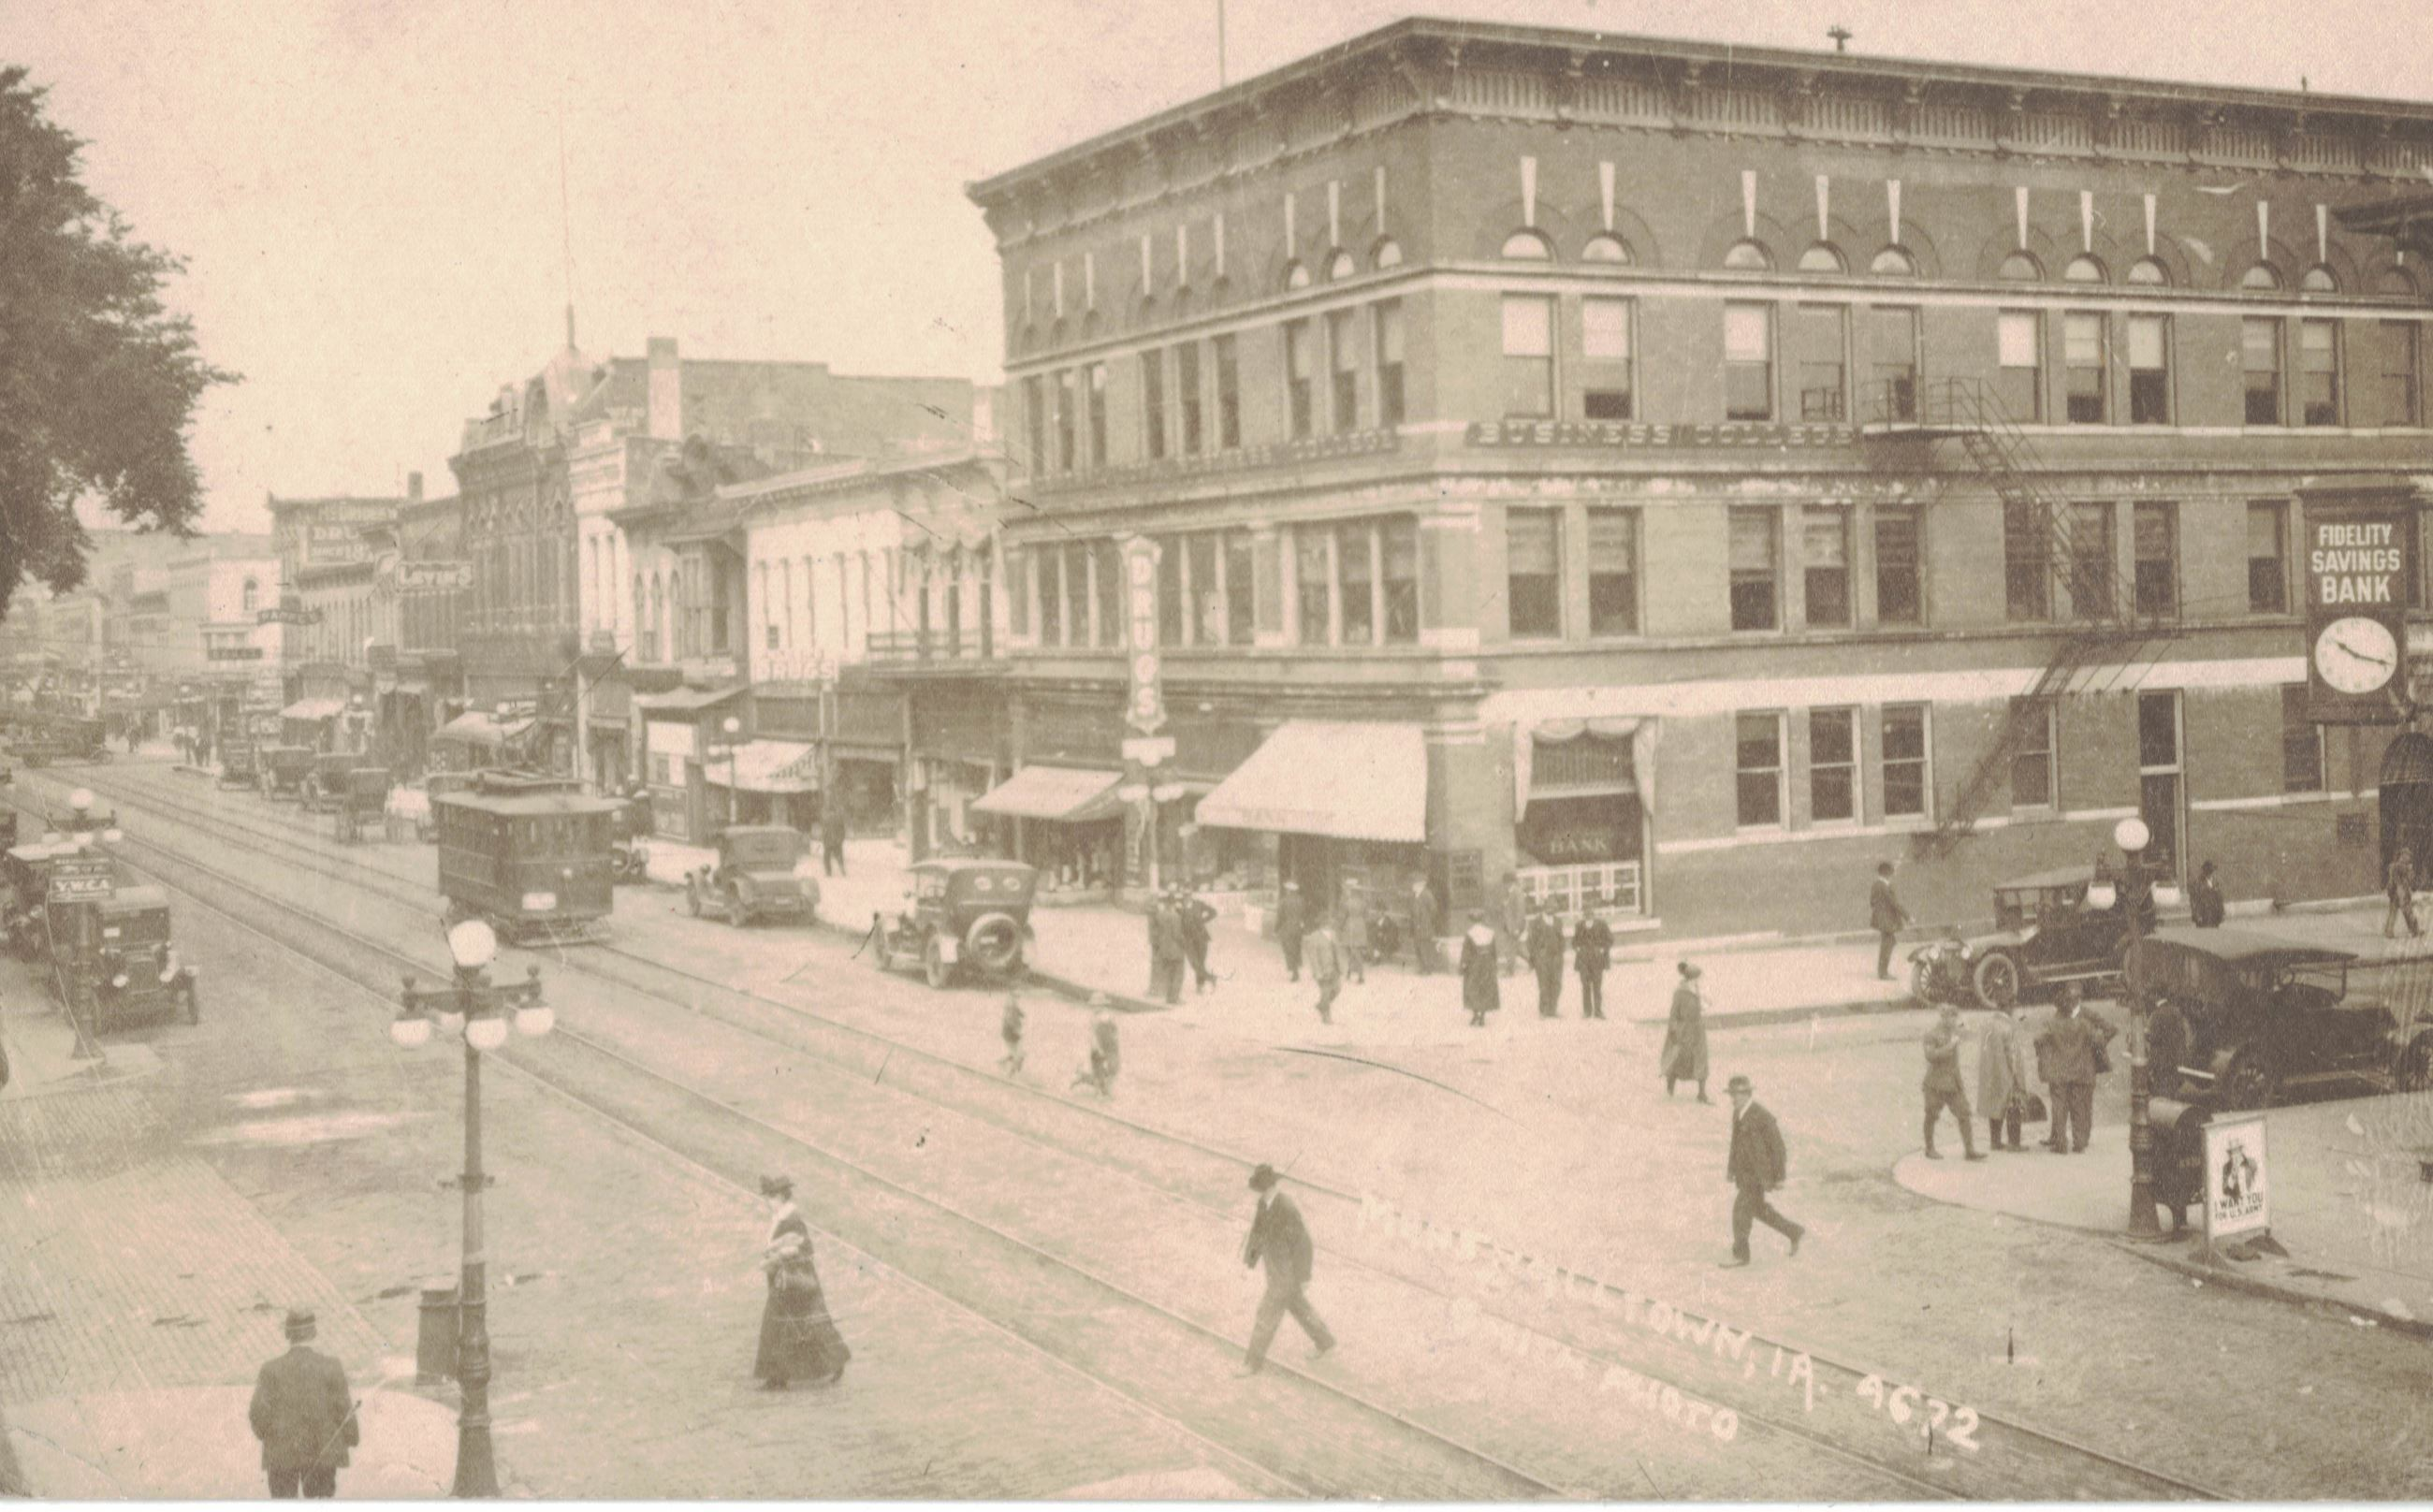 Downtown Marshalltown, 1st Avenue and Main Street, image of postcard front